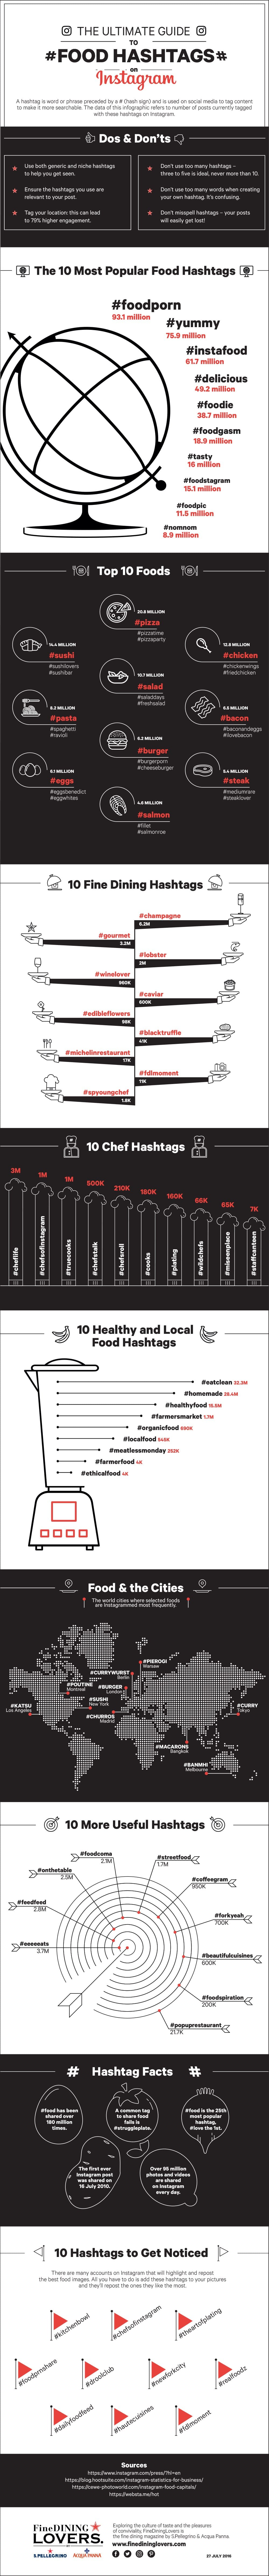 Food Hashtag Guide | Infographic by FineDiningLovers.com